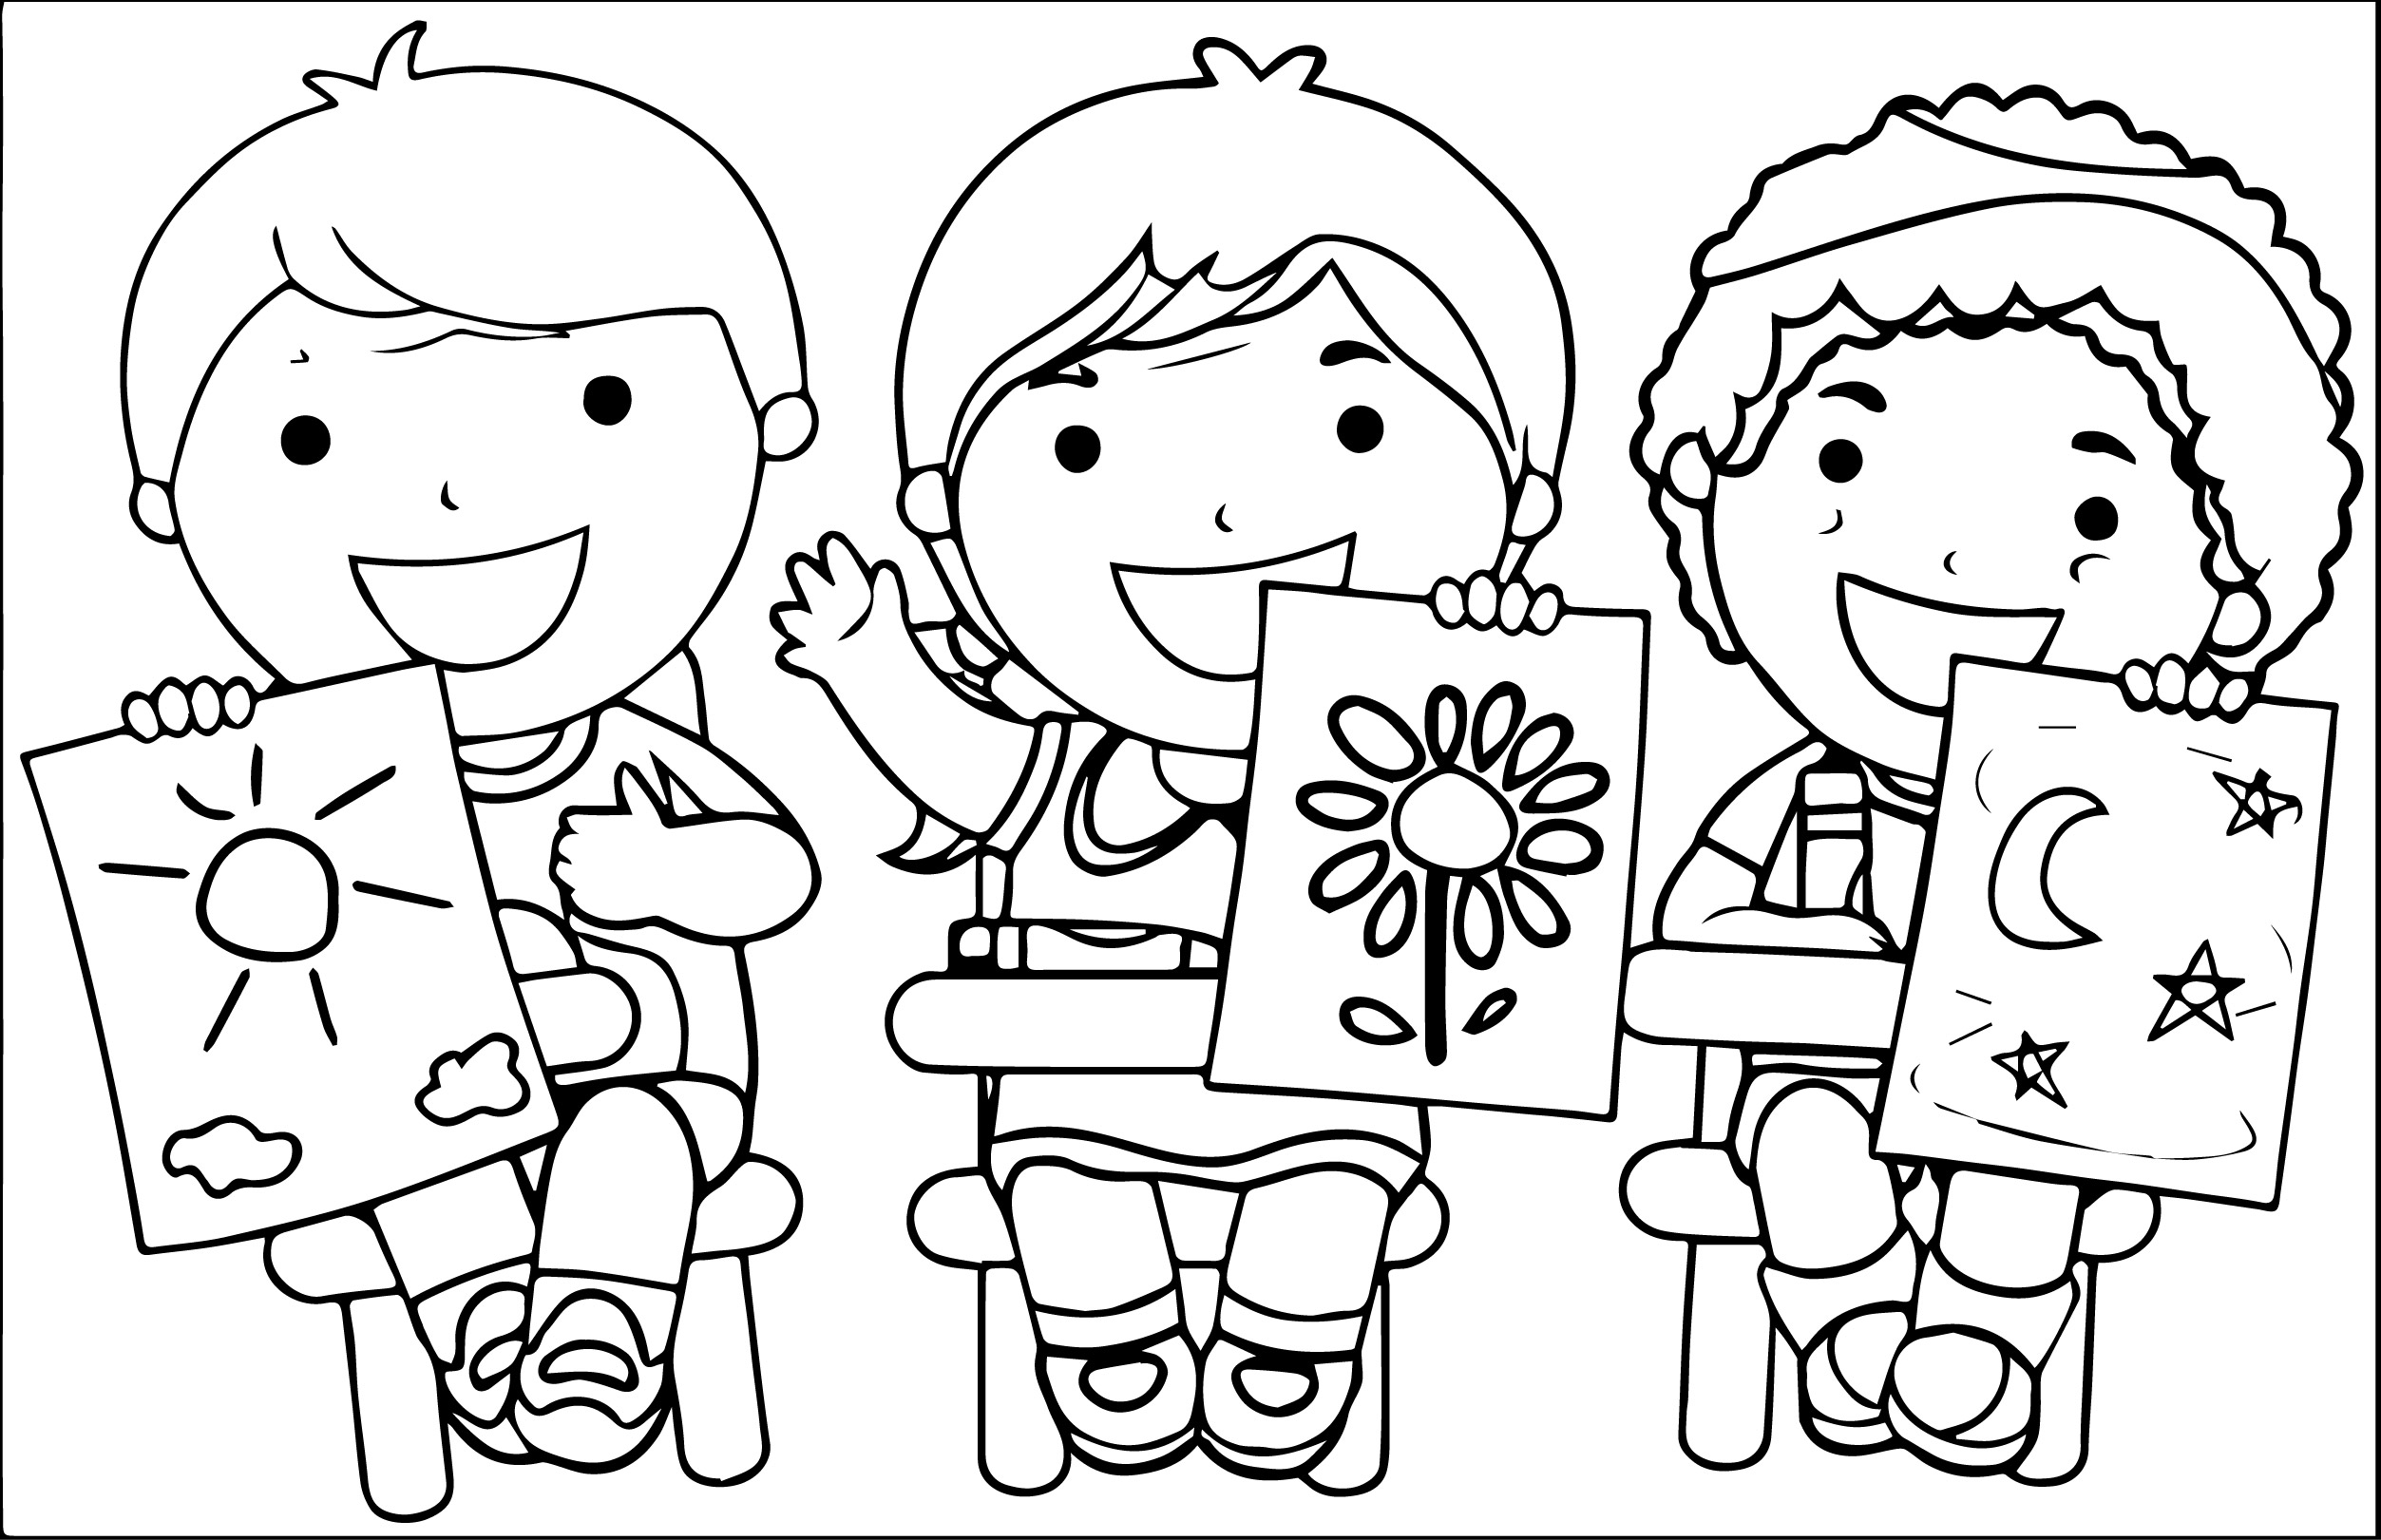 Kids Holding Copycat Pictures Kids Coloring Page